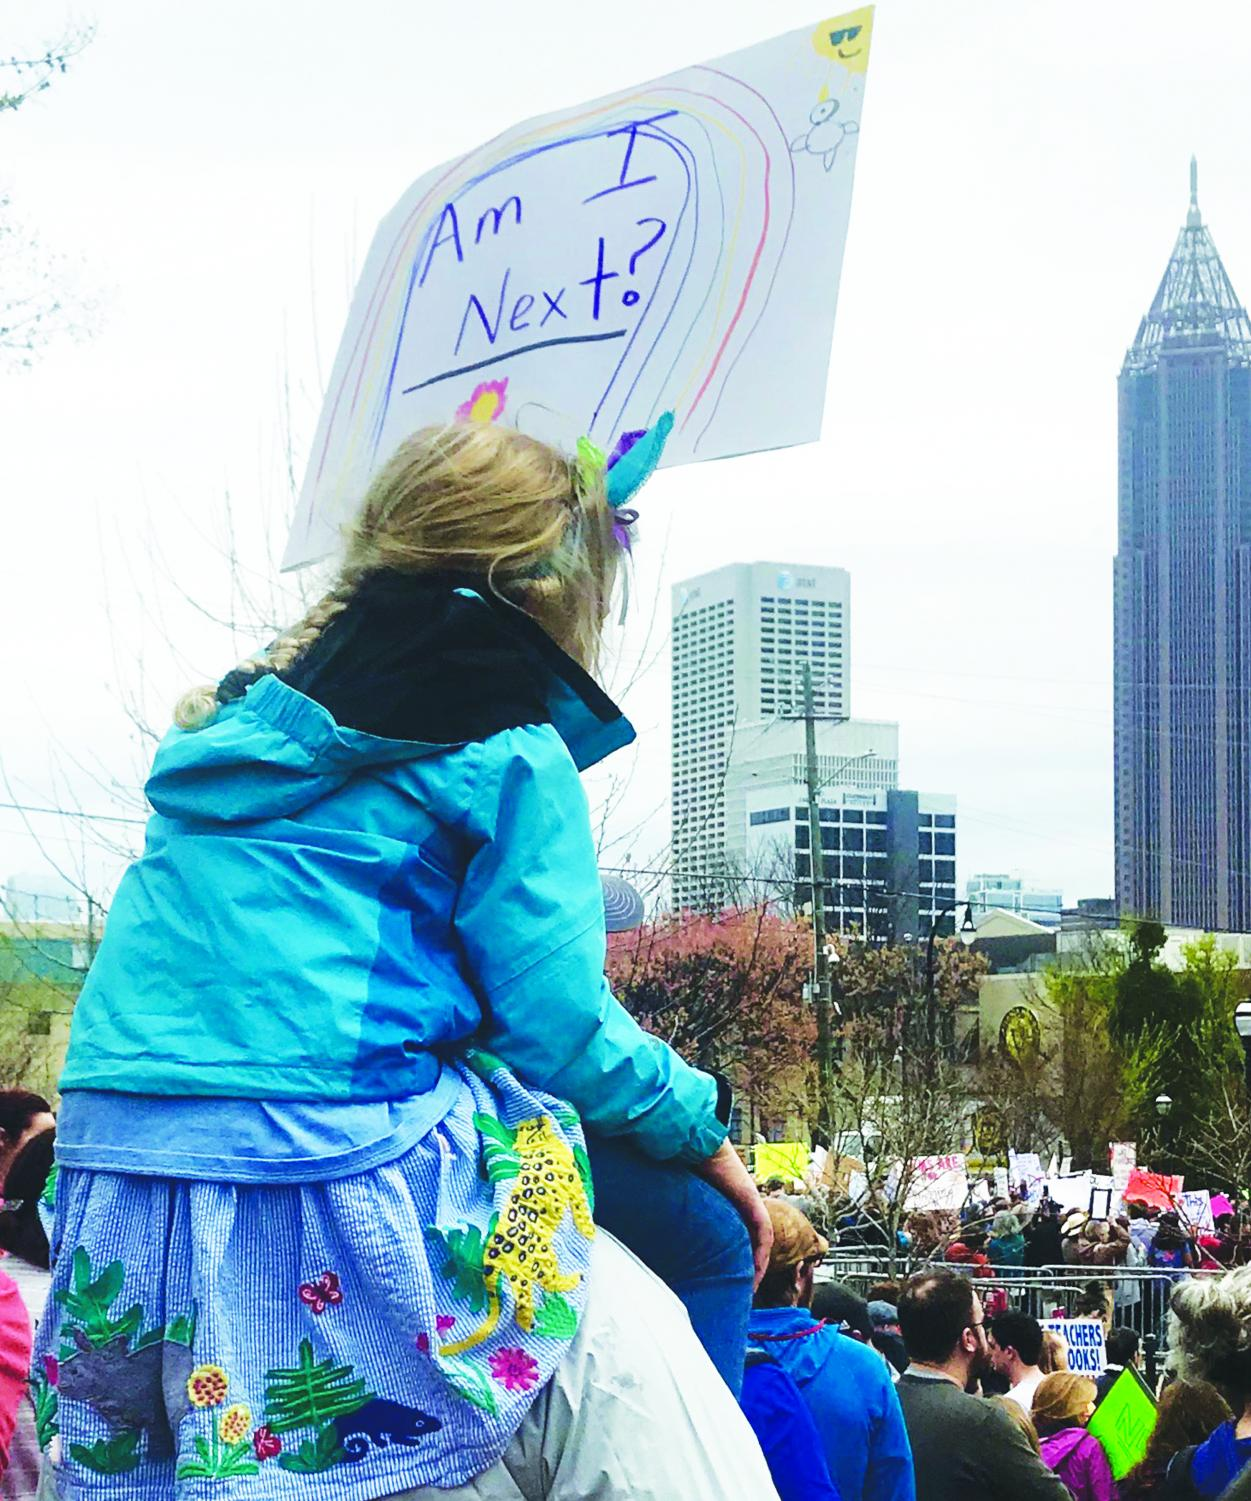 ON THE SHOULDERS OF CHANGE: A young girl sits on her father's shoulders while marching in Atlanta on Mar. 24 with a sign reading